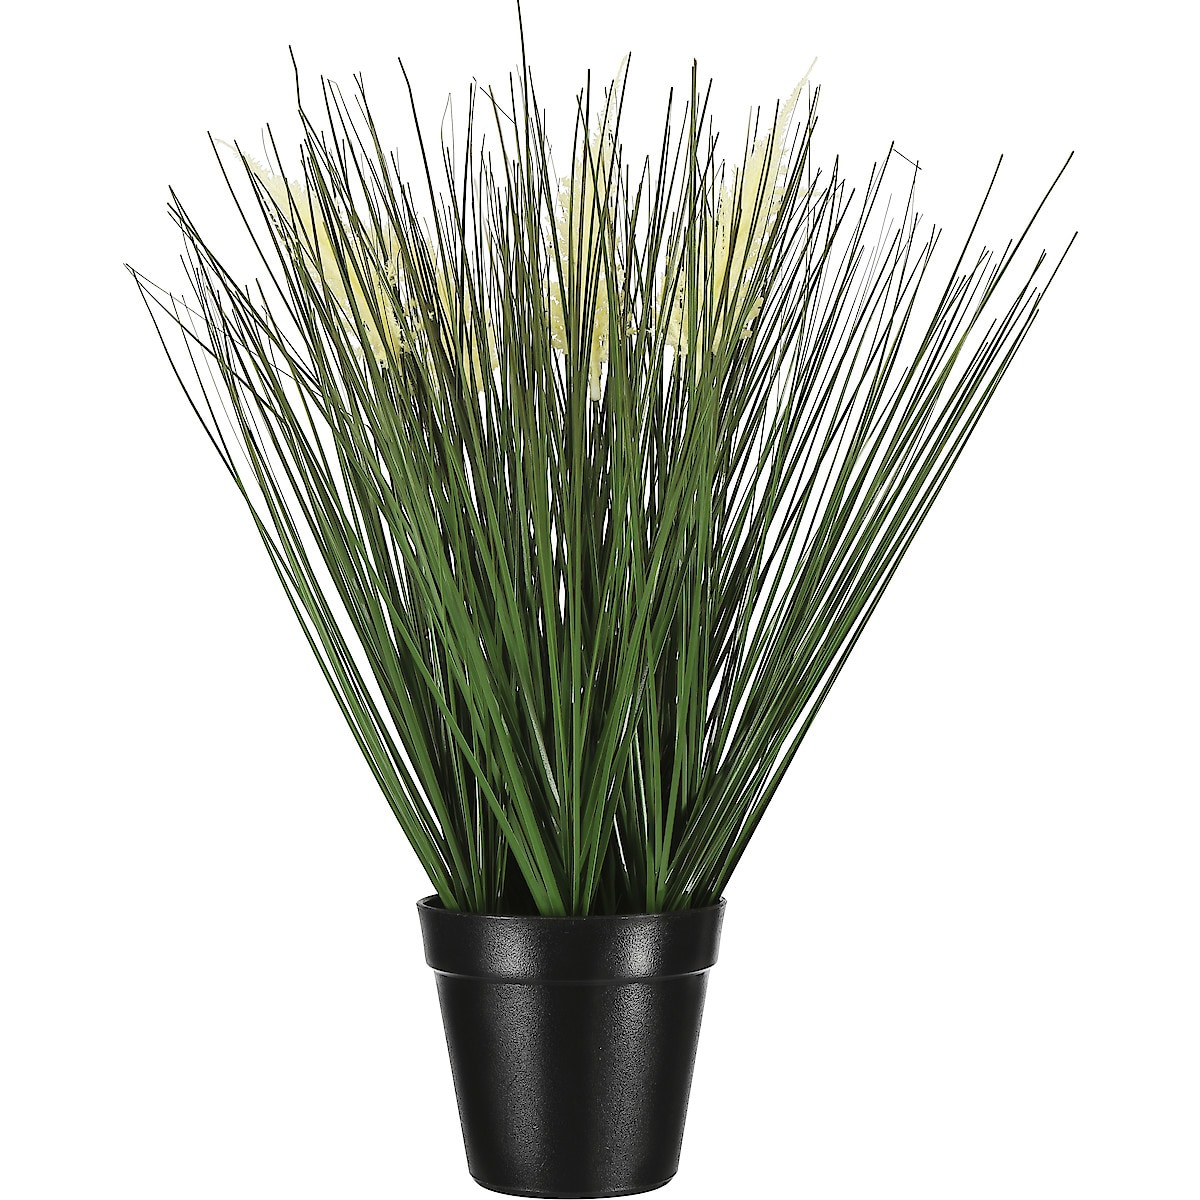 Artificial Potted Grass 45 cm